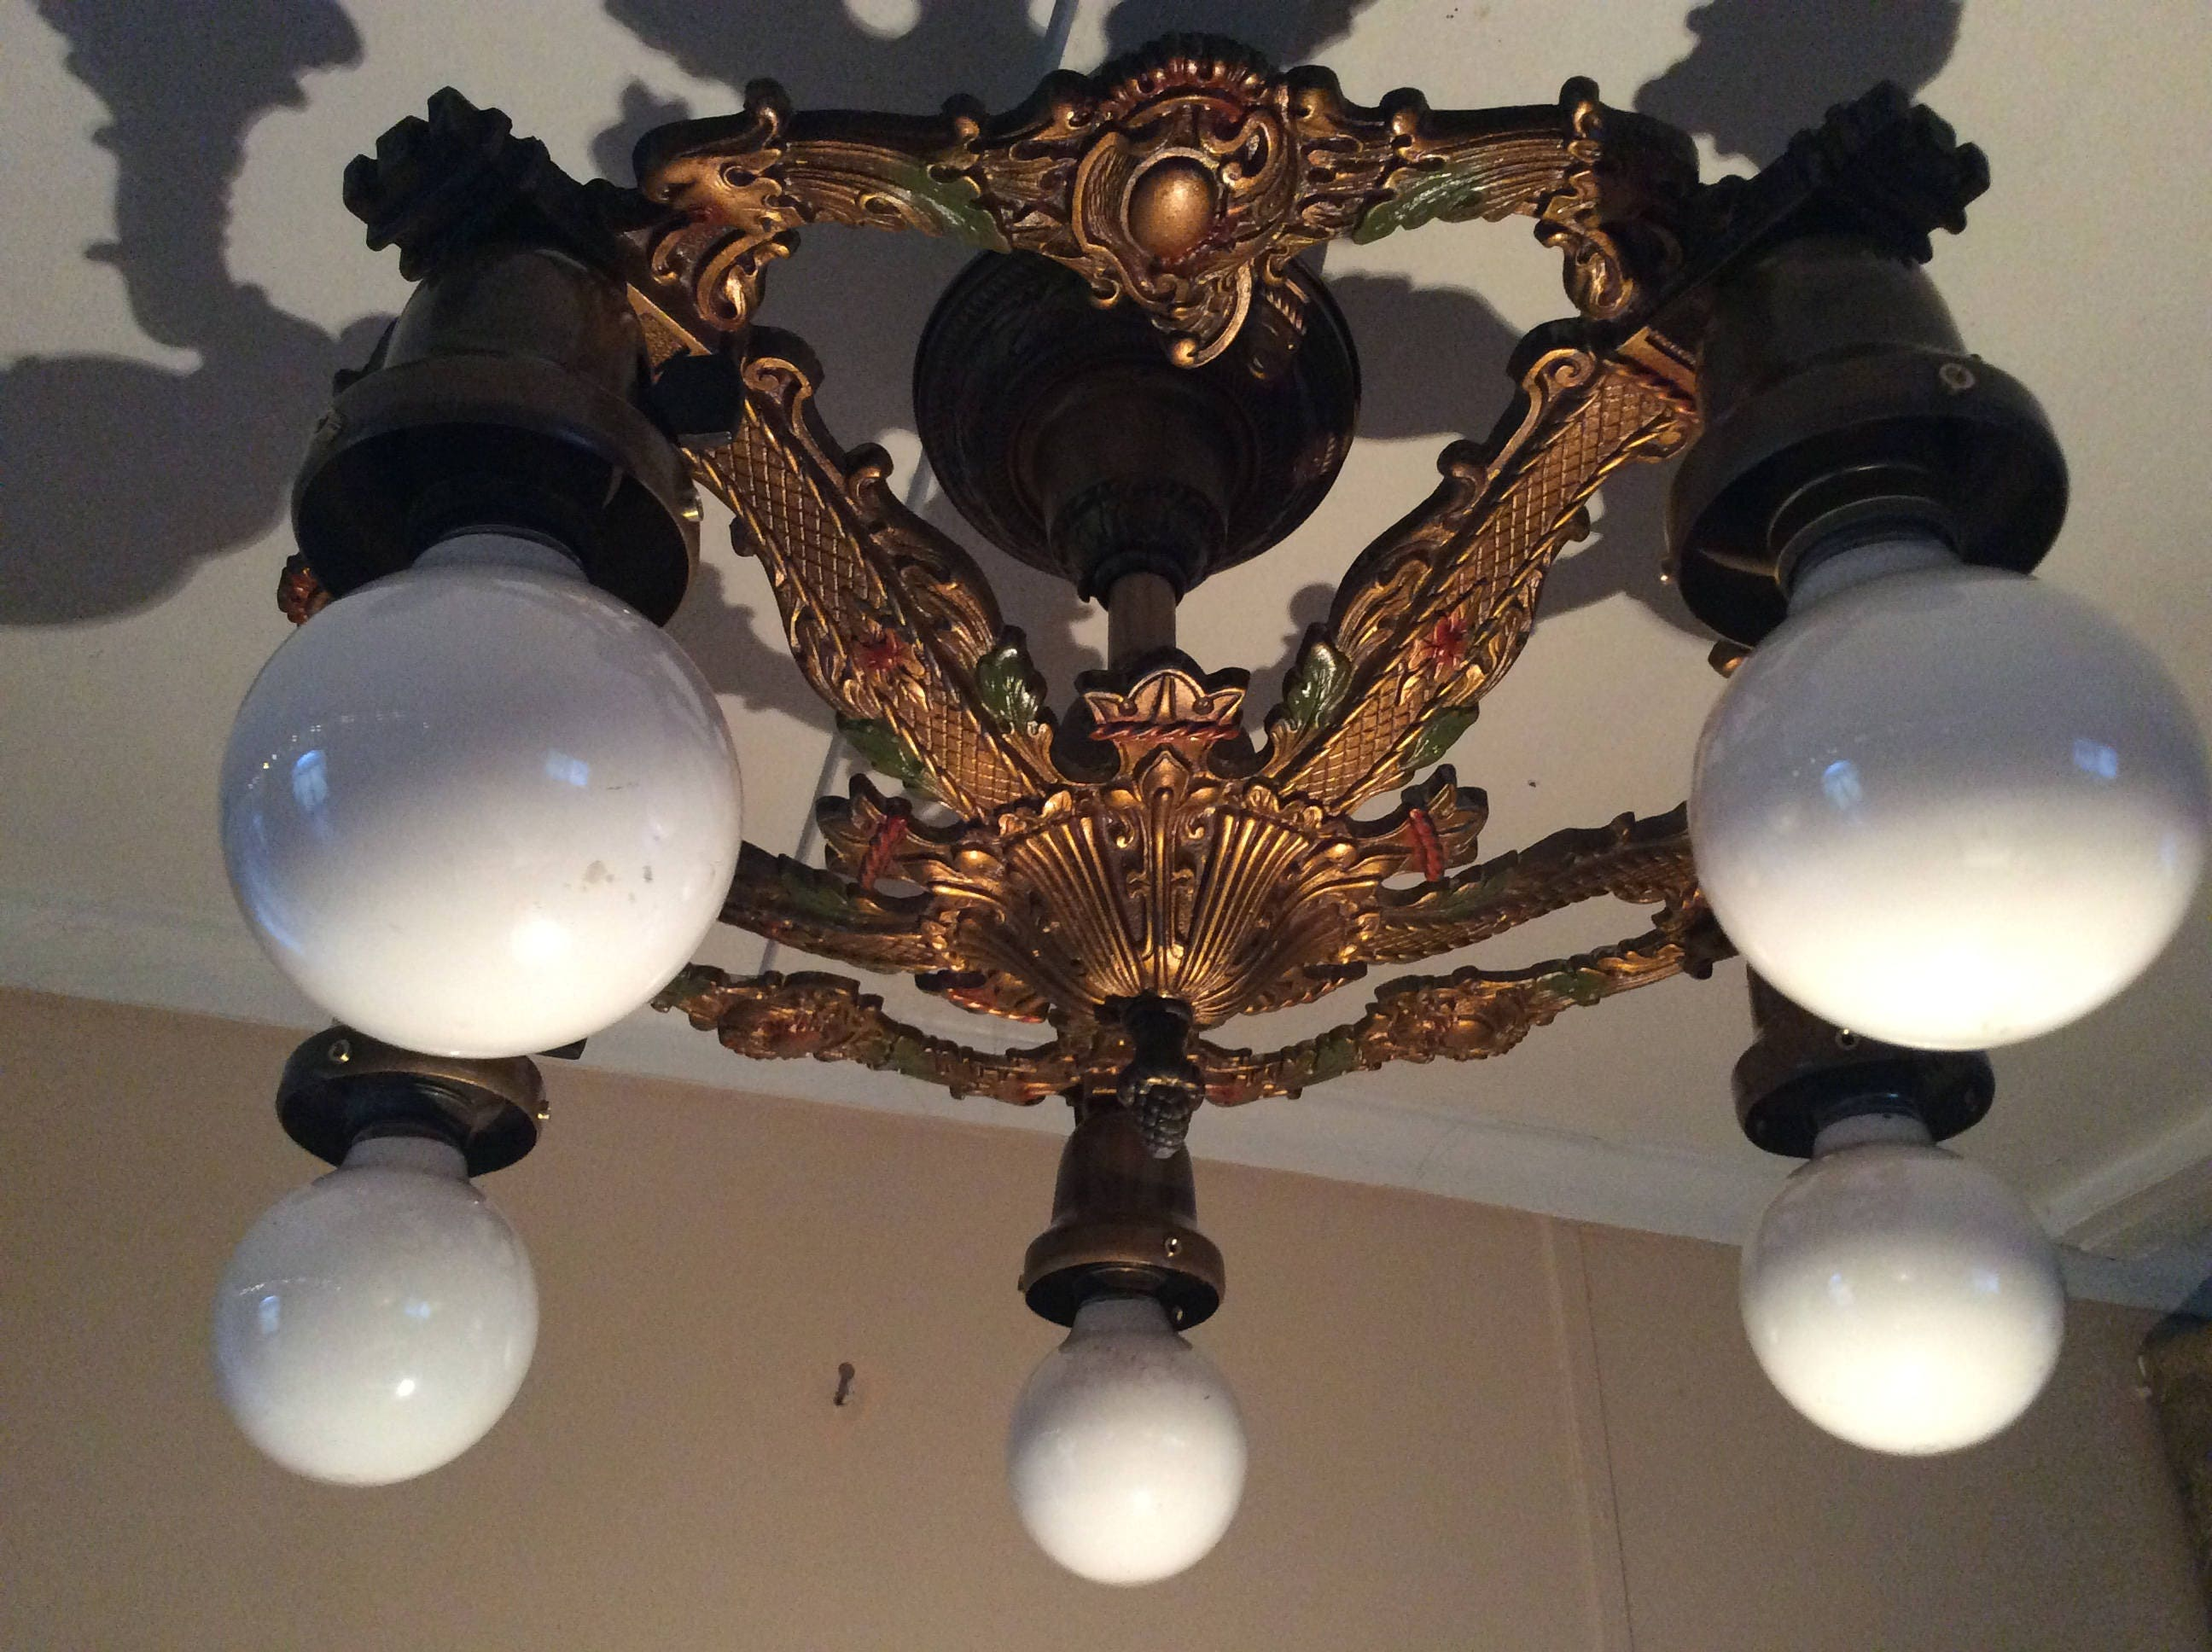 Antique Art Deco Ceiling Light Fixture Chandelier Polychrome ...